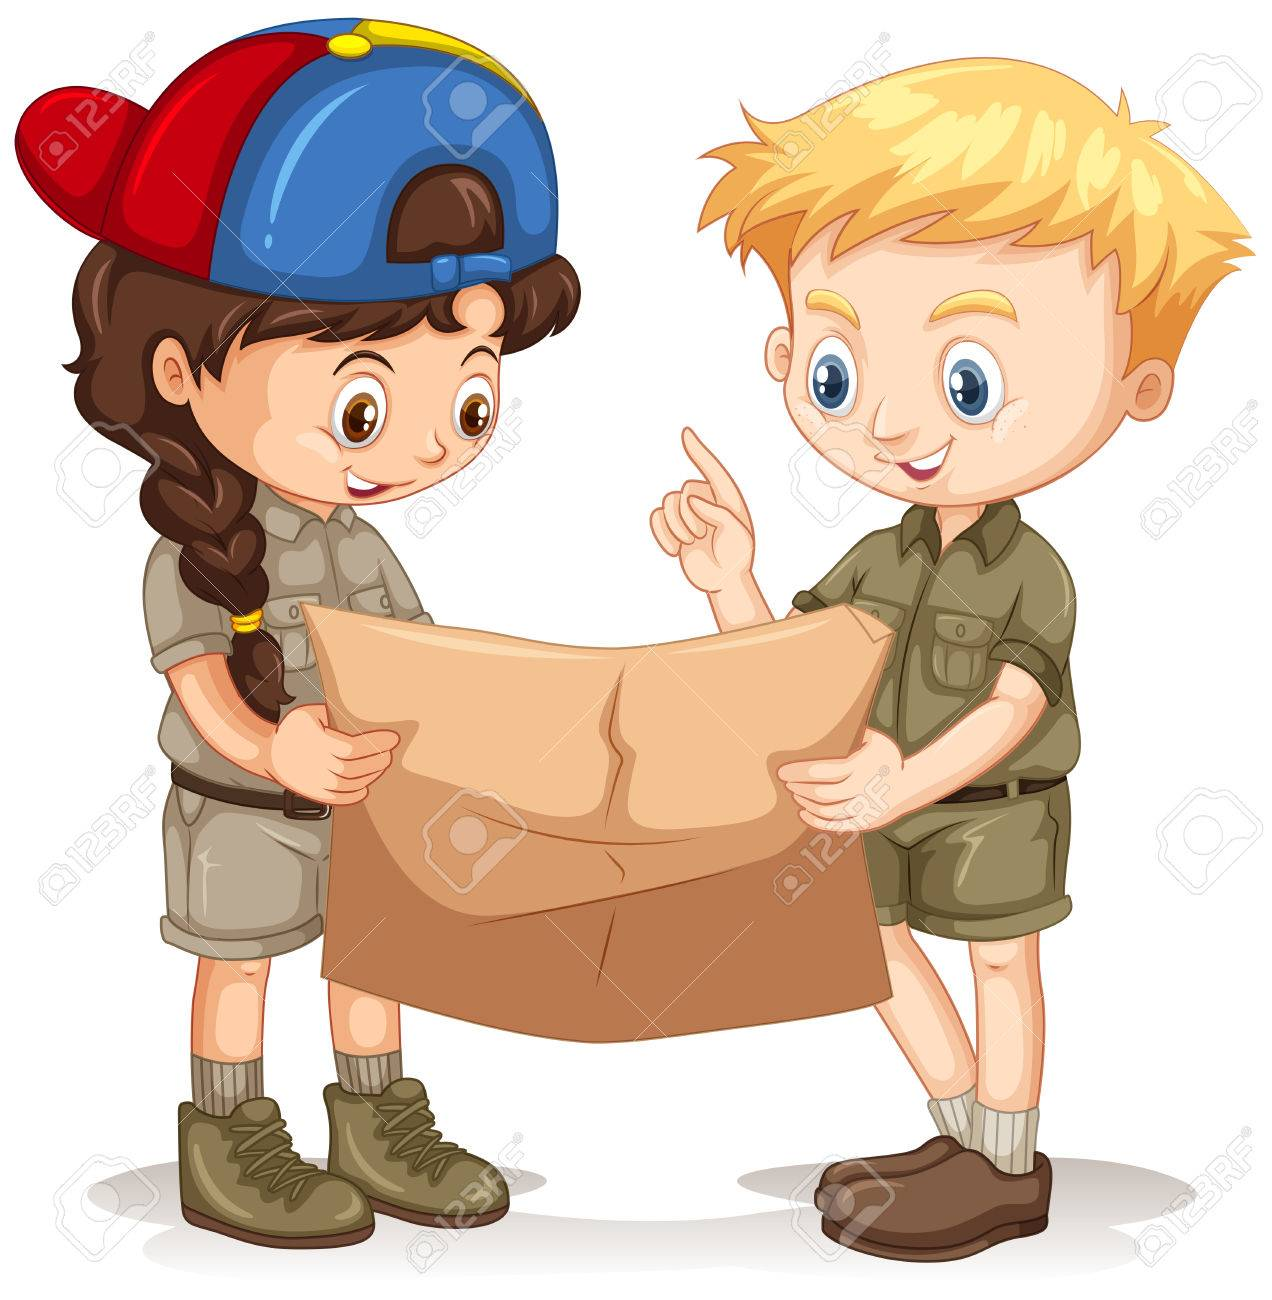 Boy and girl reading map illustration.